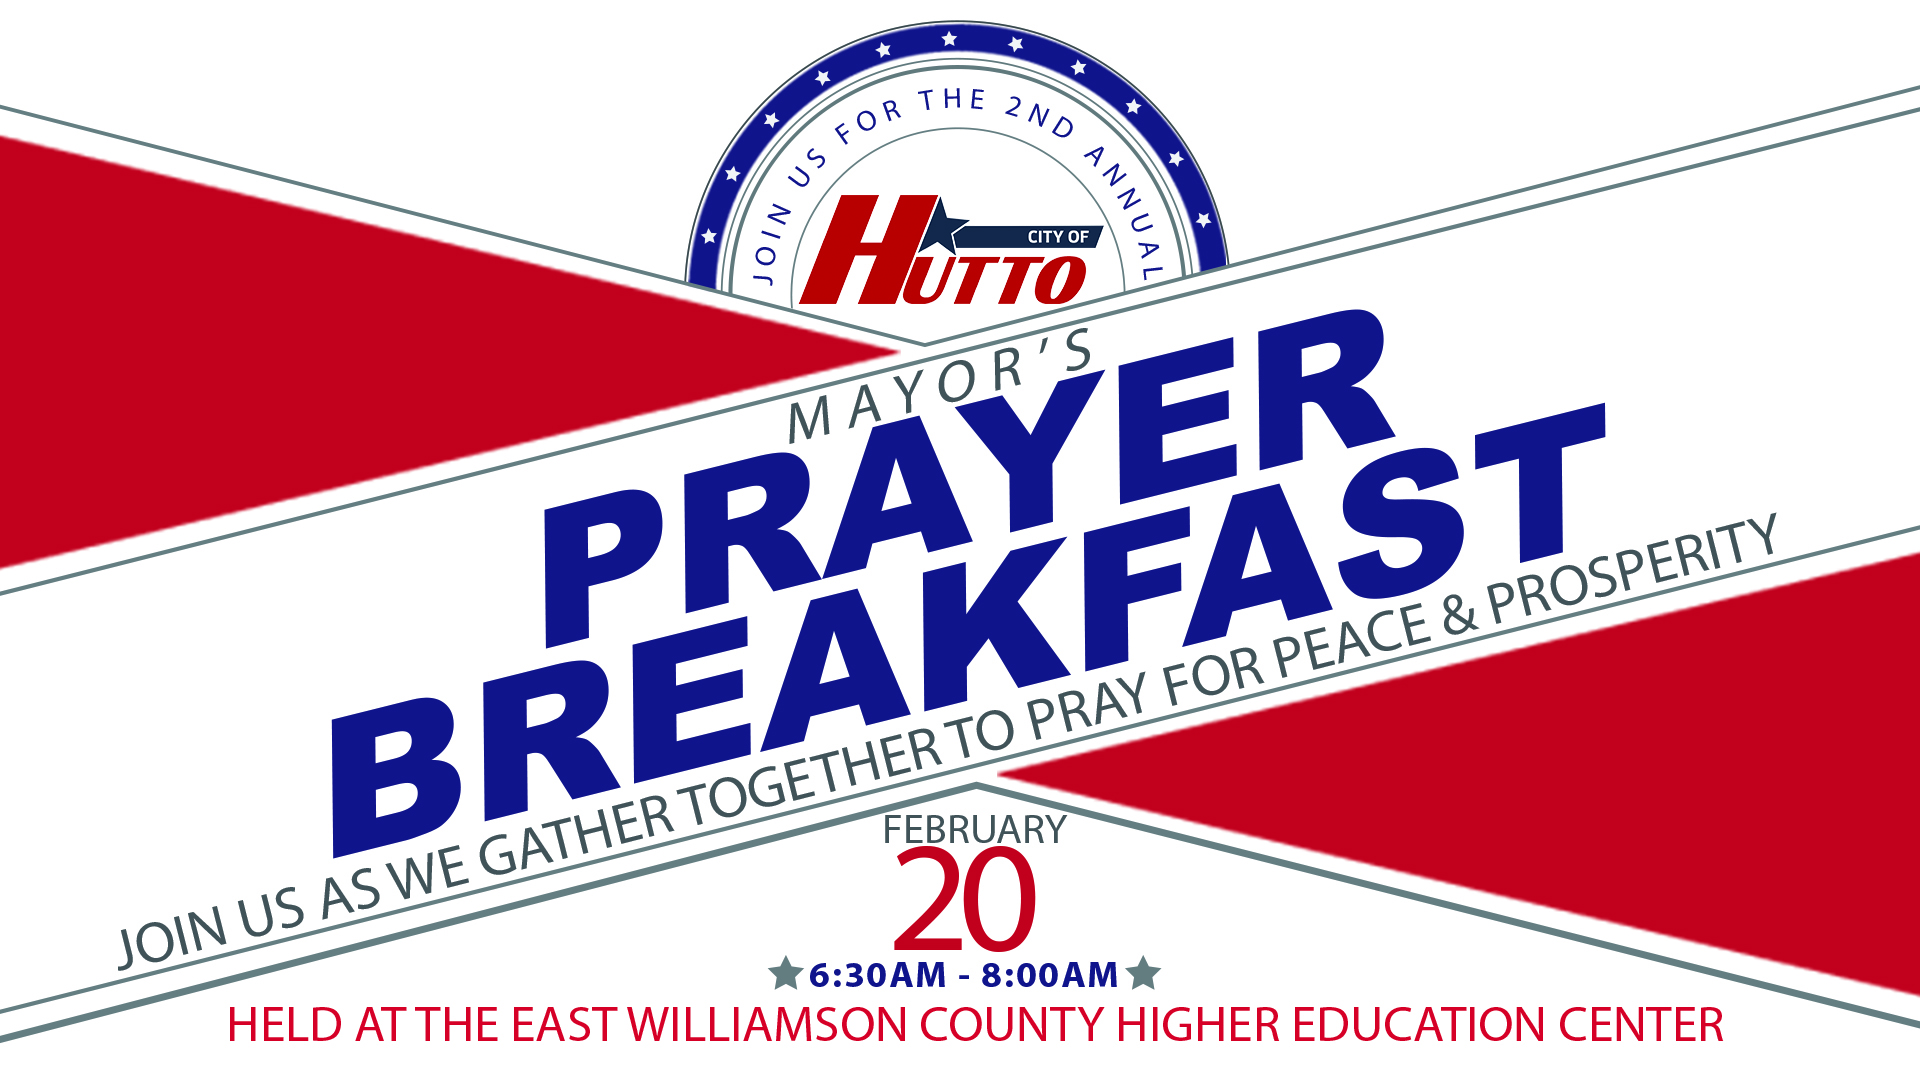 Mayors Prayer Breakfast - FB EVENT IMAGE 1920 by 1080